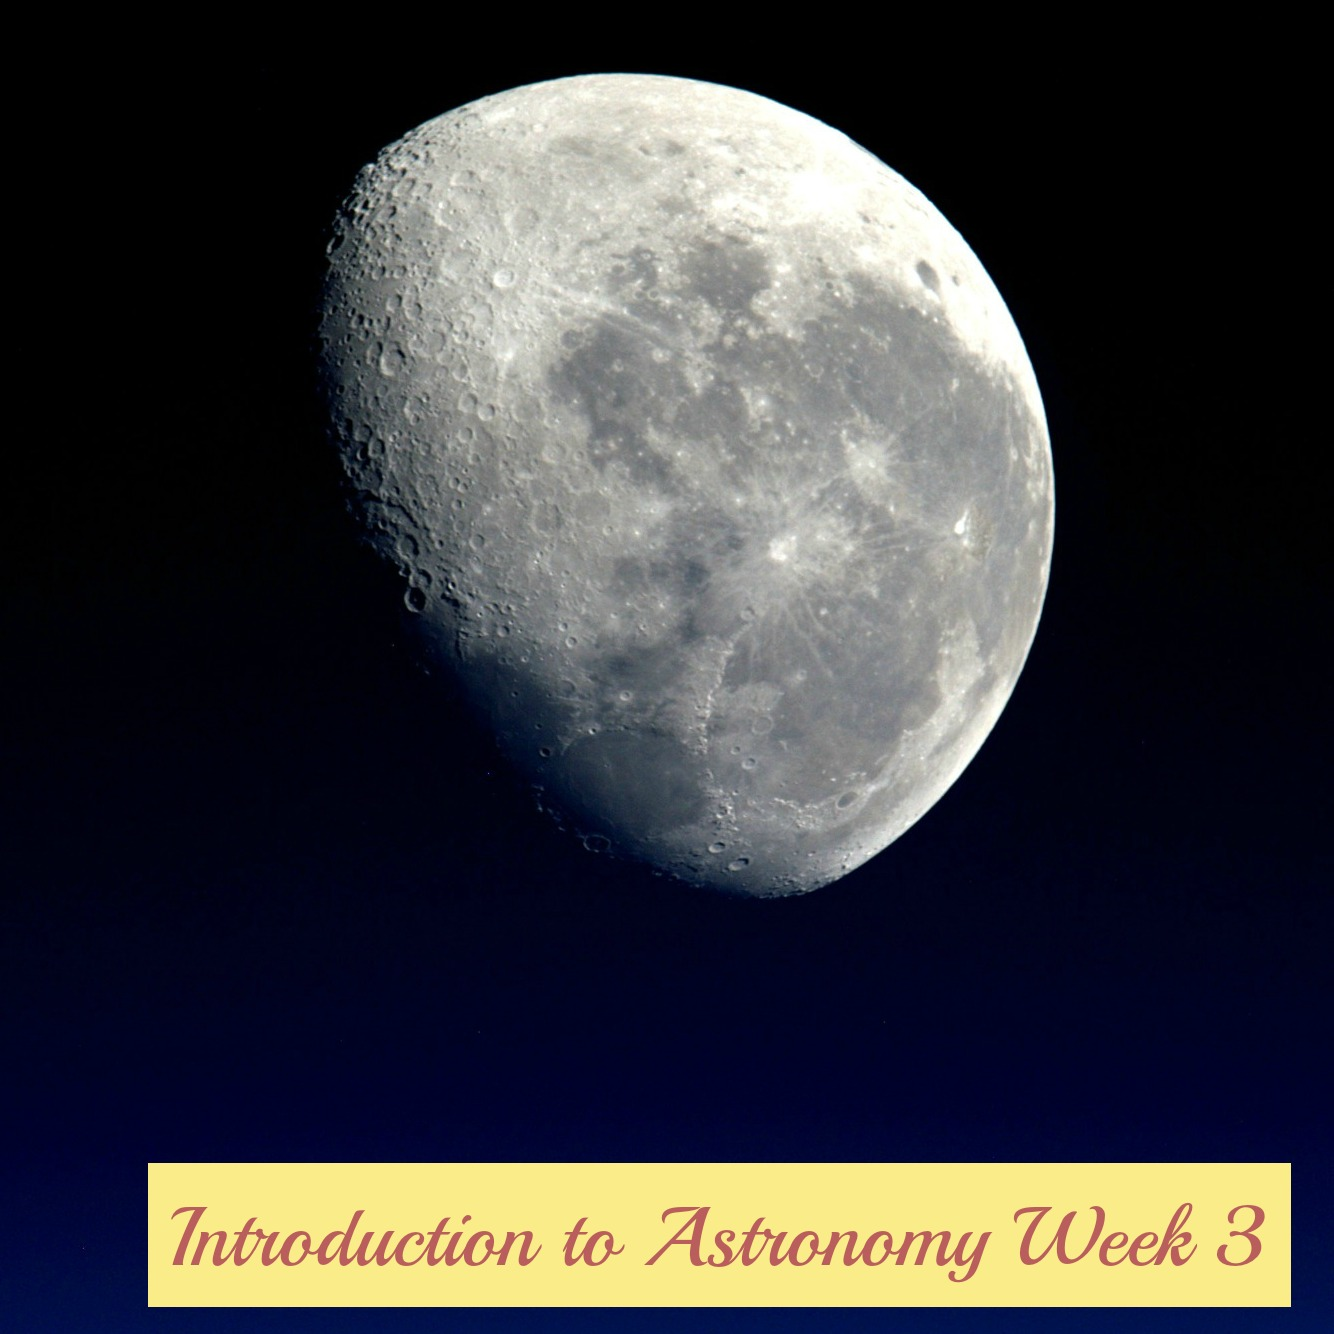 week 3 telescopes in astronomy paper Sci 151 week 3 stars and telescopes  science of stars paper option 2: telescopes in astronomy  telescopes in astronomy.